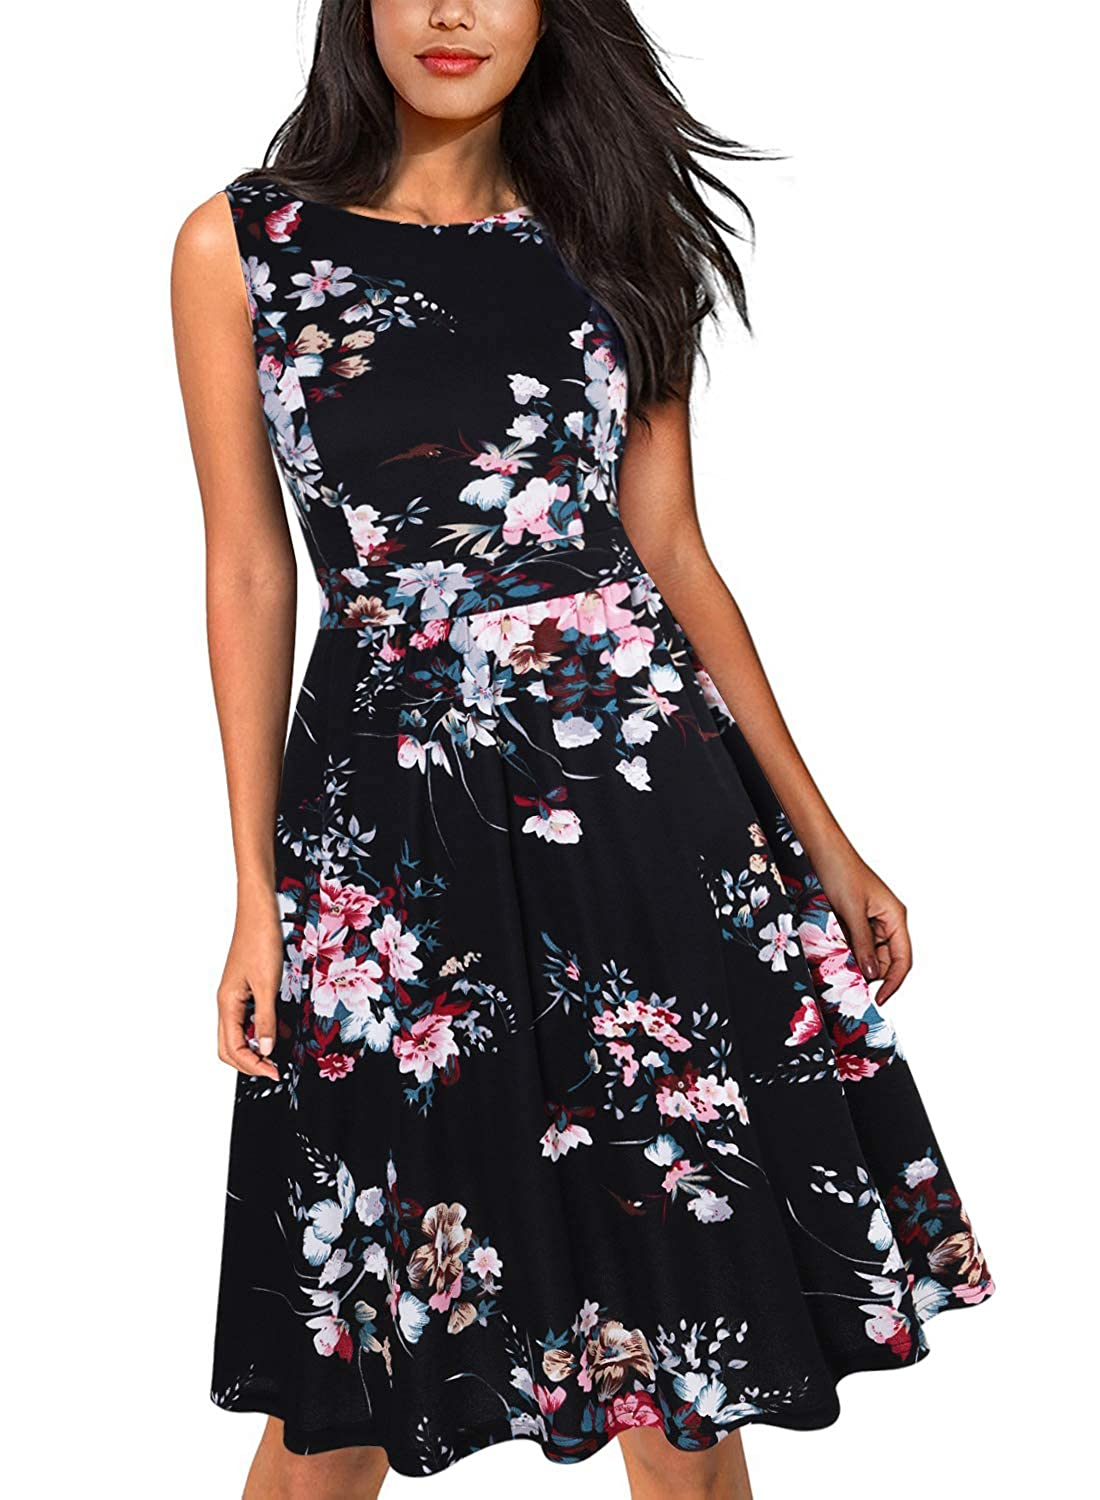 0f11aa6ce78c2 MISSJOY Womens Vintage 1950's Sleeveless Floral Rockabilly Garden Party  Dress: Amazon.ca: Clothing & Accessories